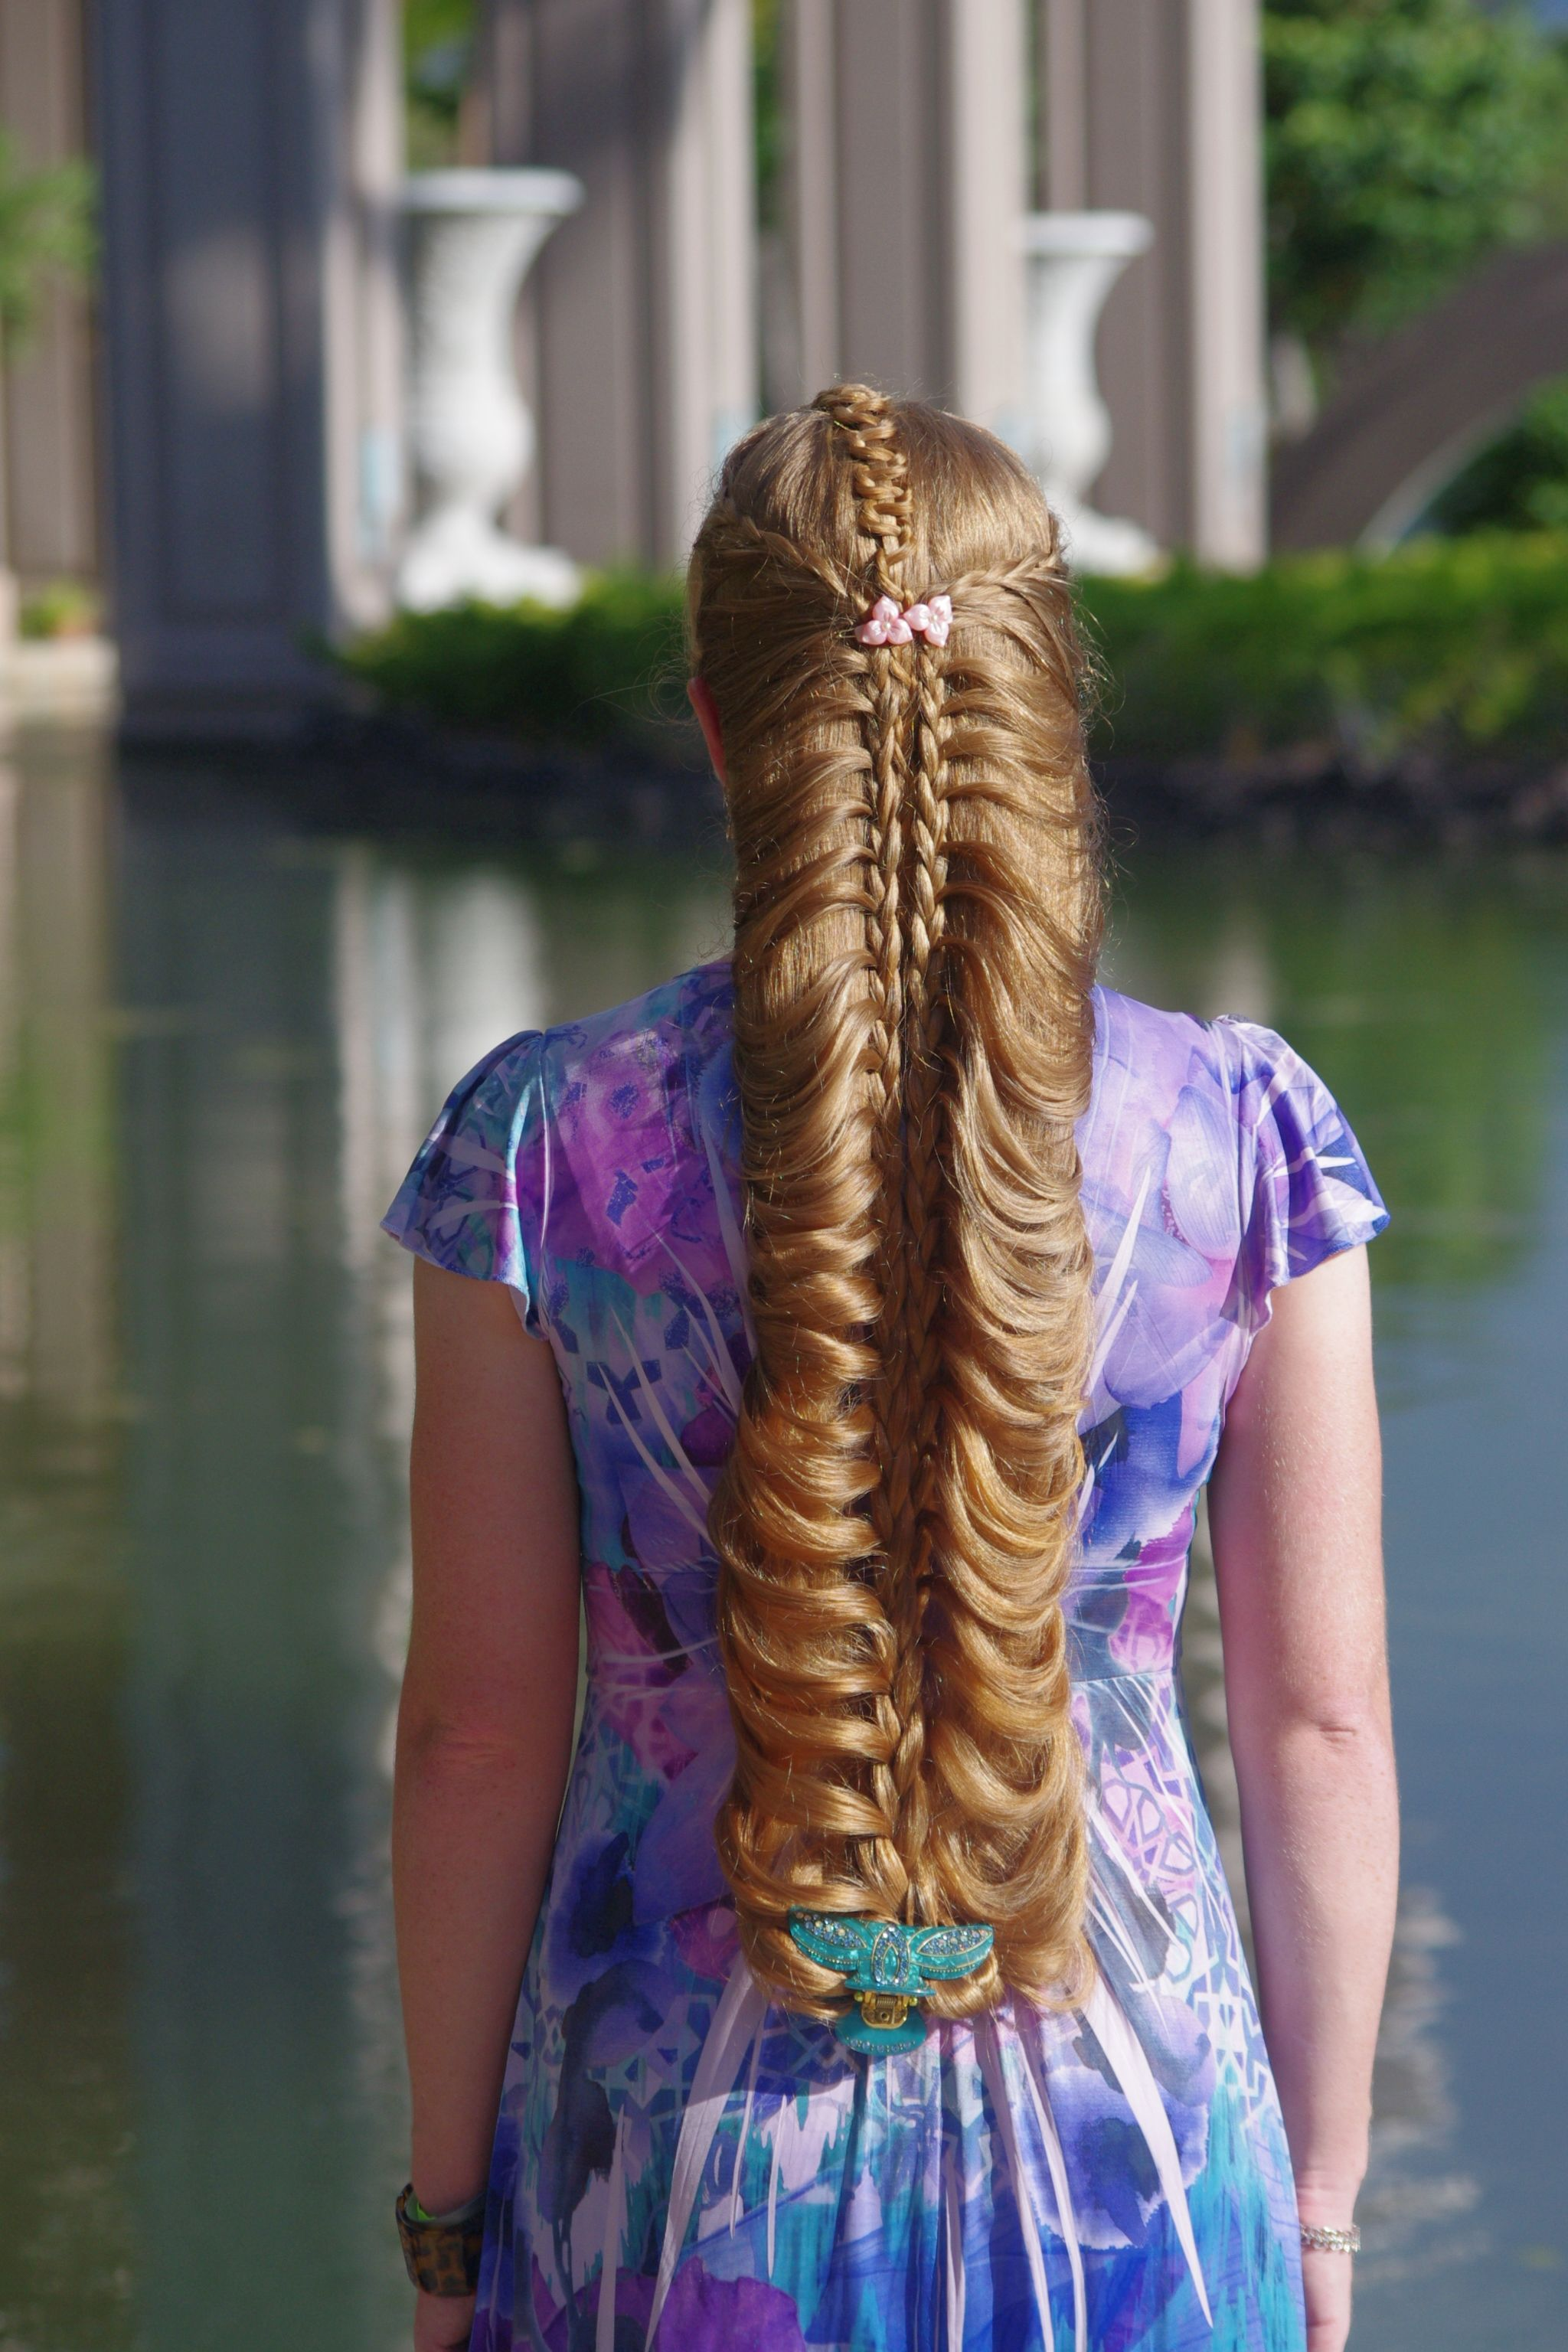 Perimetercage braid hairstyles super long full hd for very hair of laptop pics